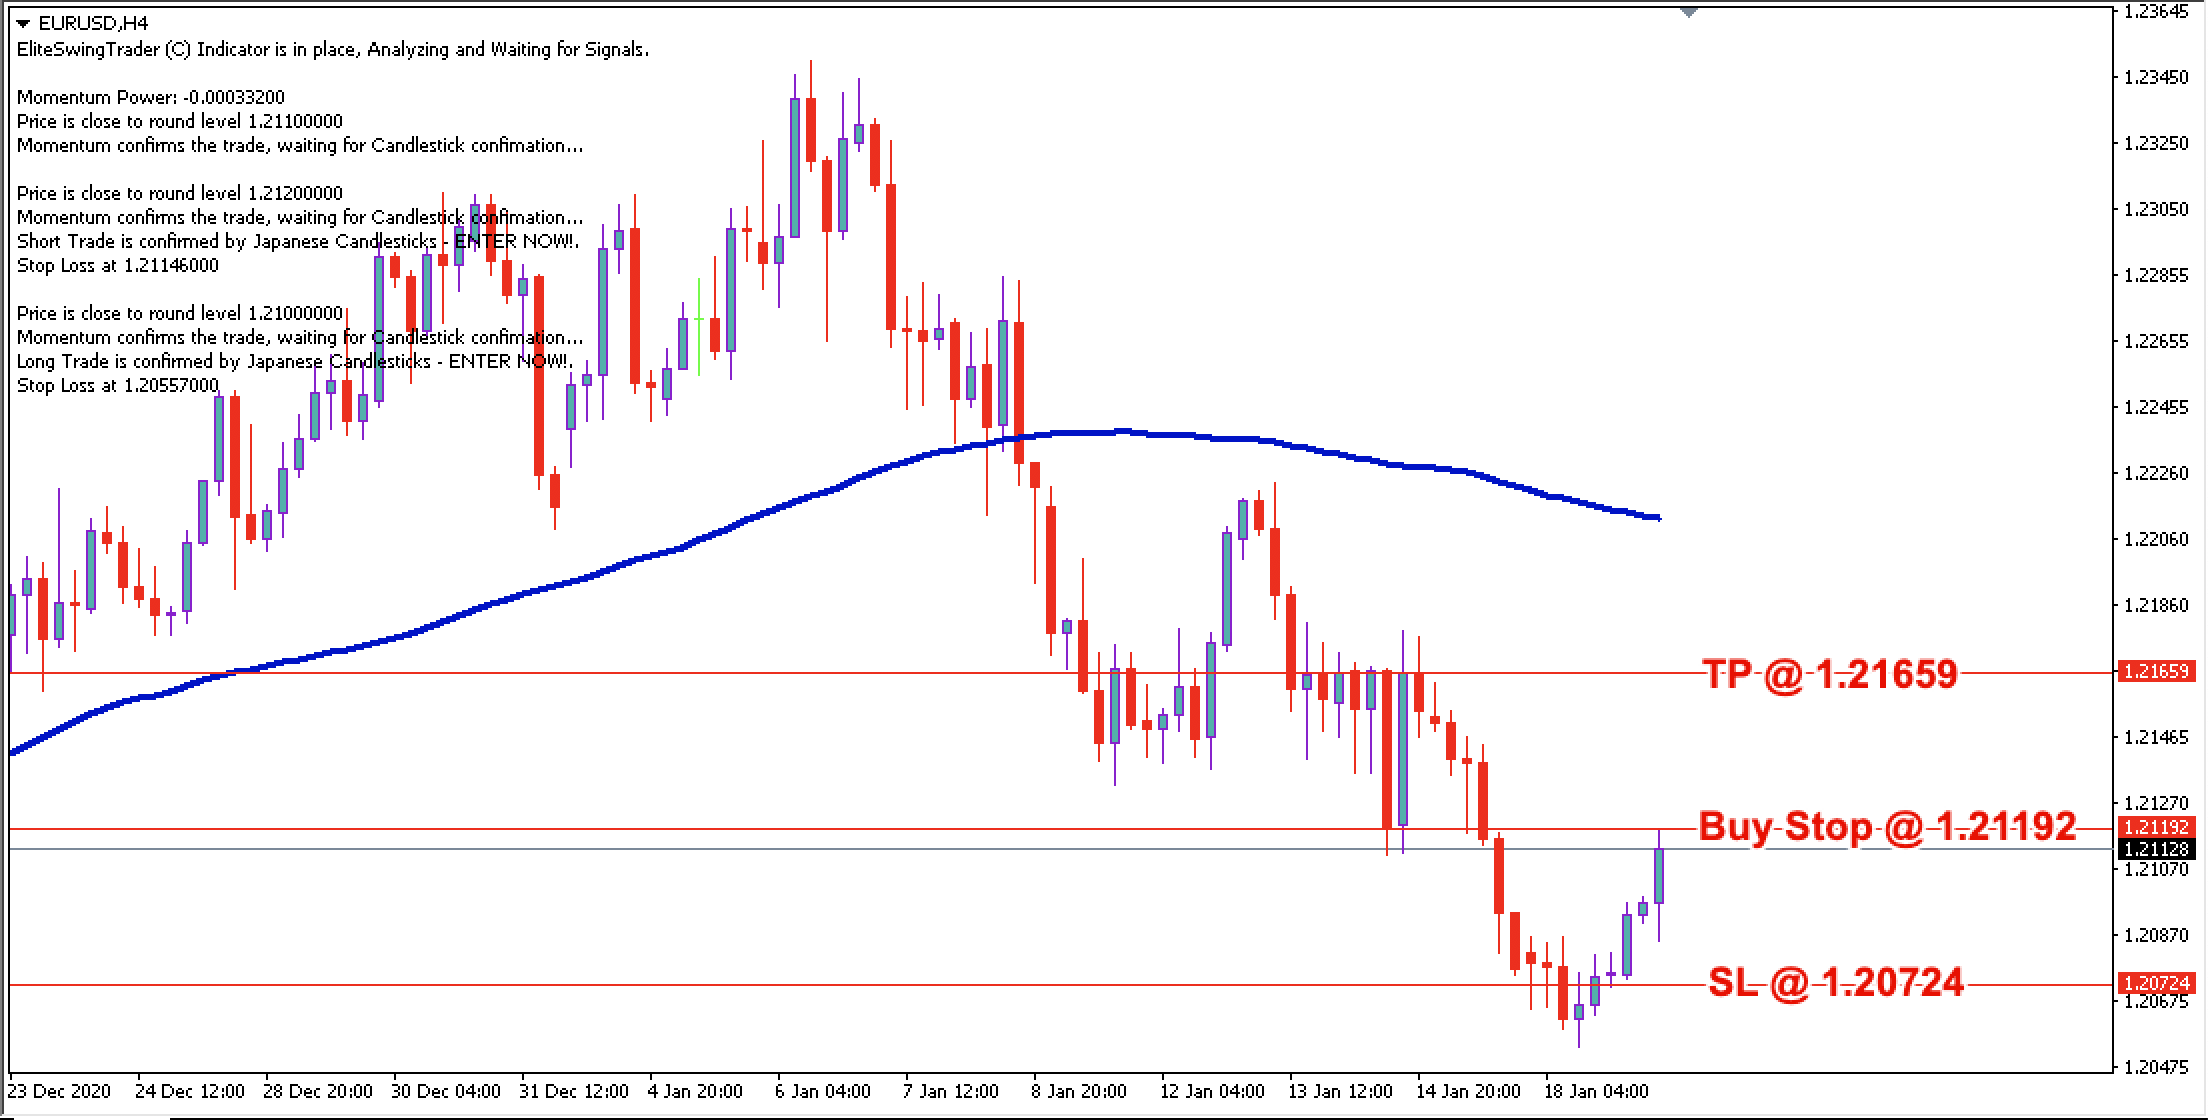 EUR/USD Daily Price Forecast - 19th Jan 2021